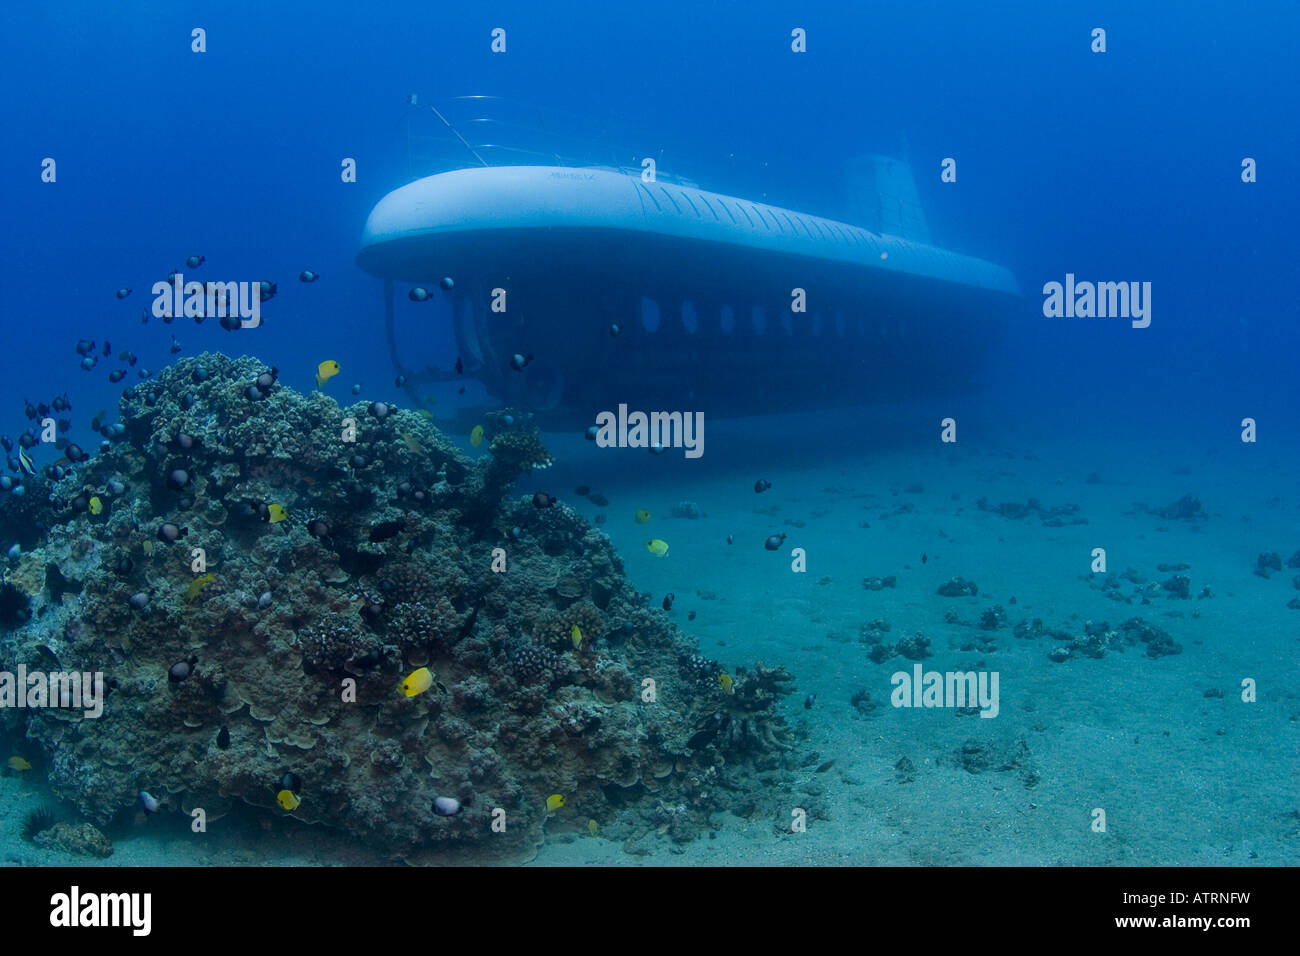 This Atlantis submarine is exploring a small reef off the coast of Maui, Hawaii. - Stock Image